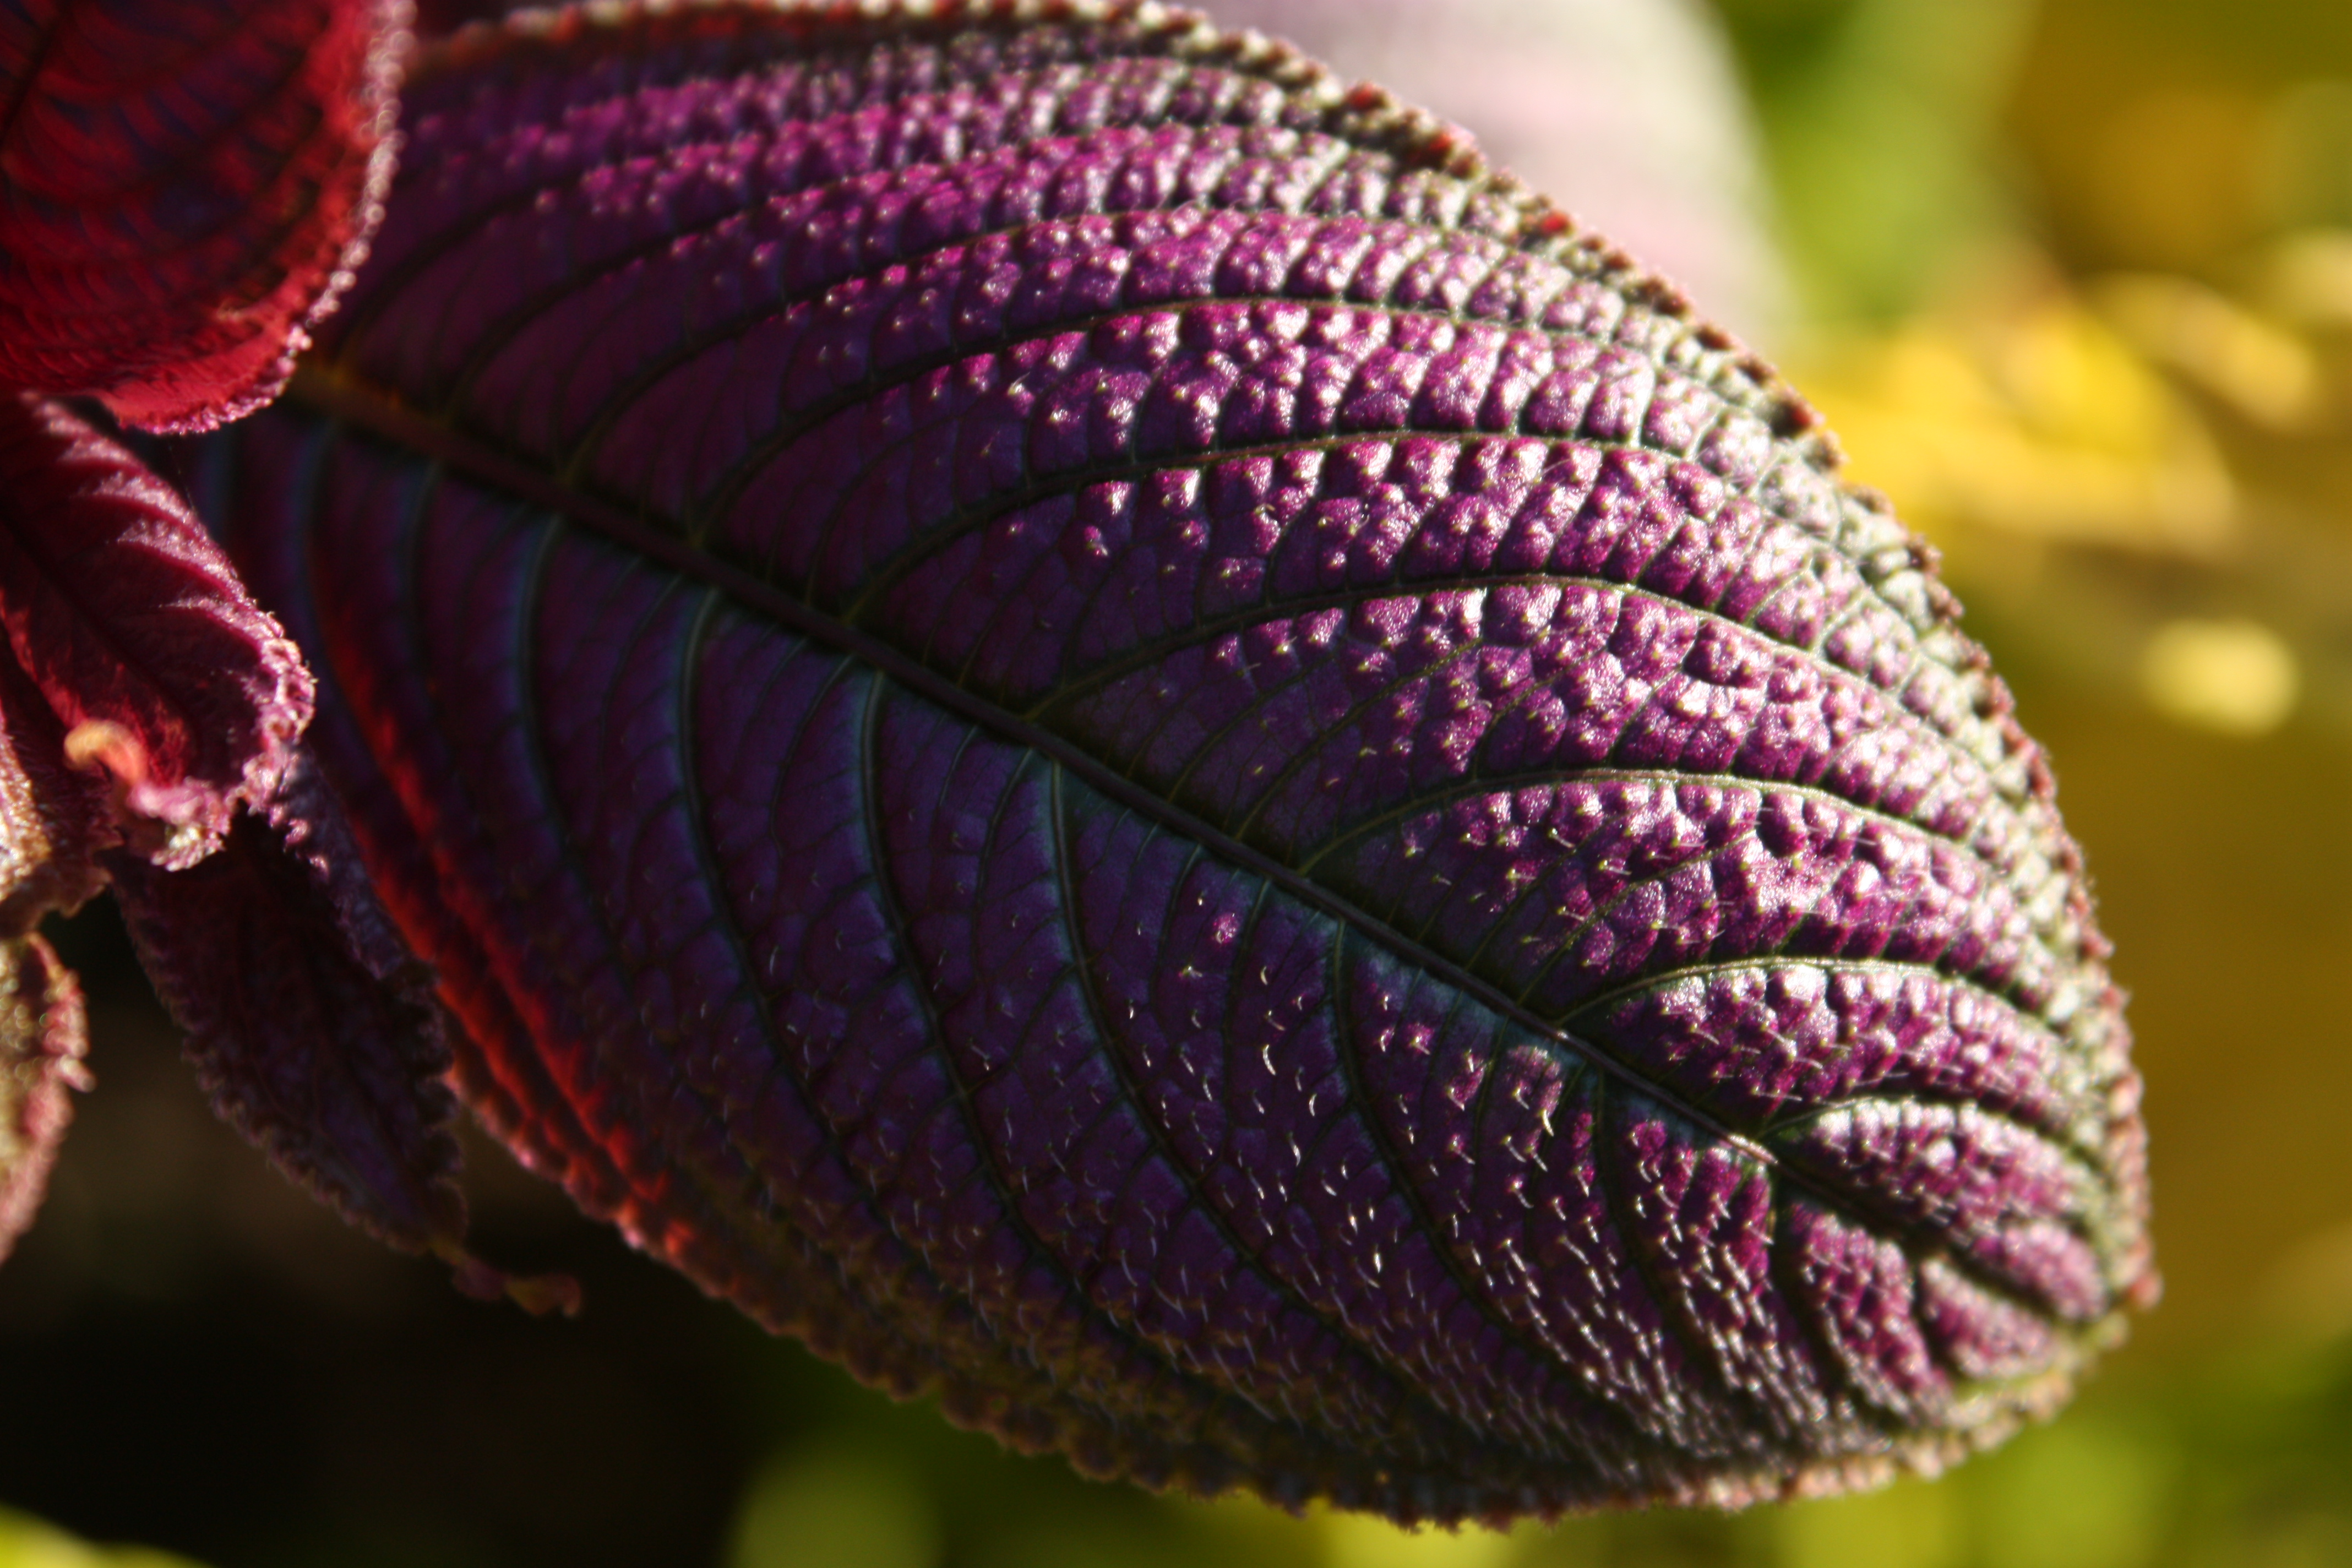 Persian Shield (Strobilanthes), sidelit, with yellow coleus in background